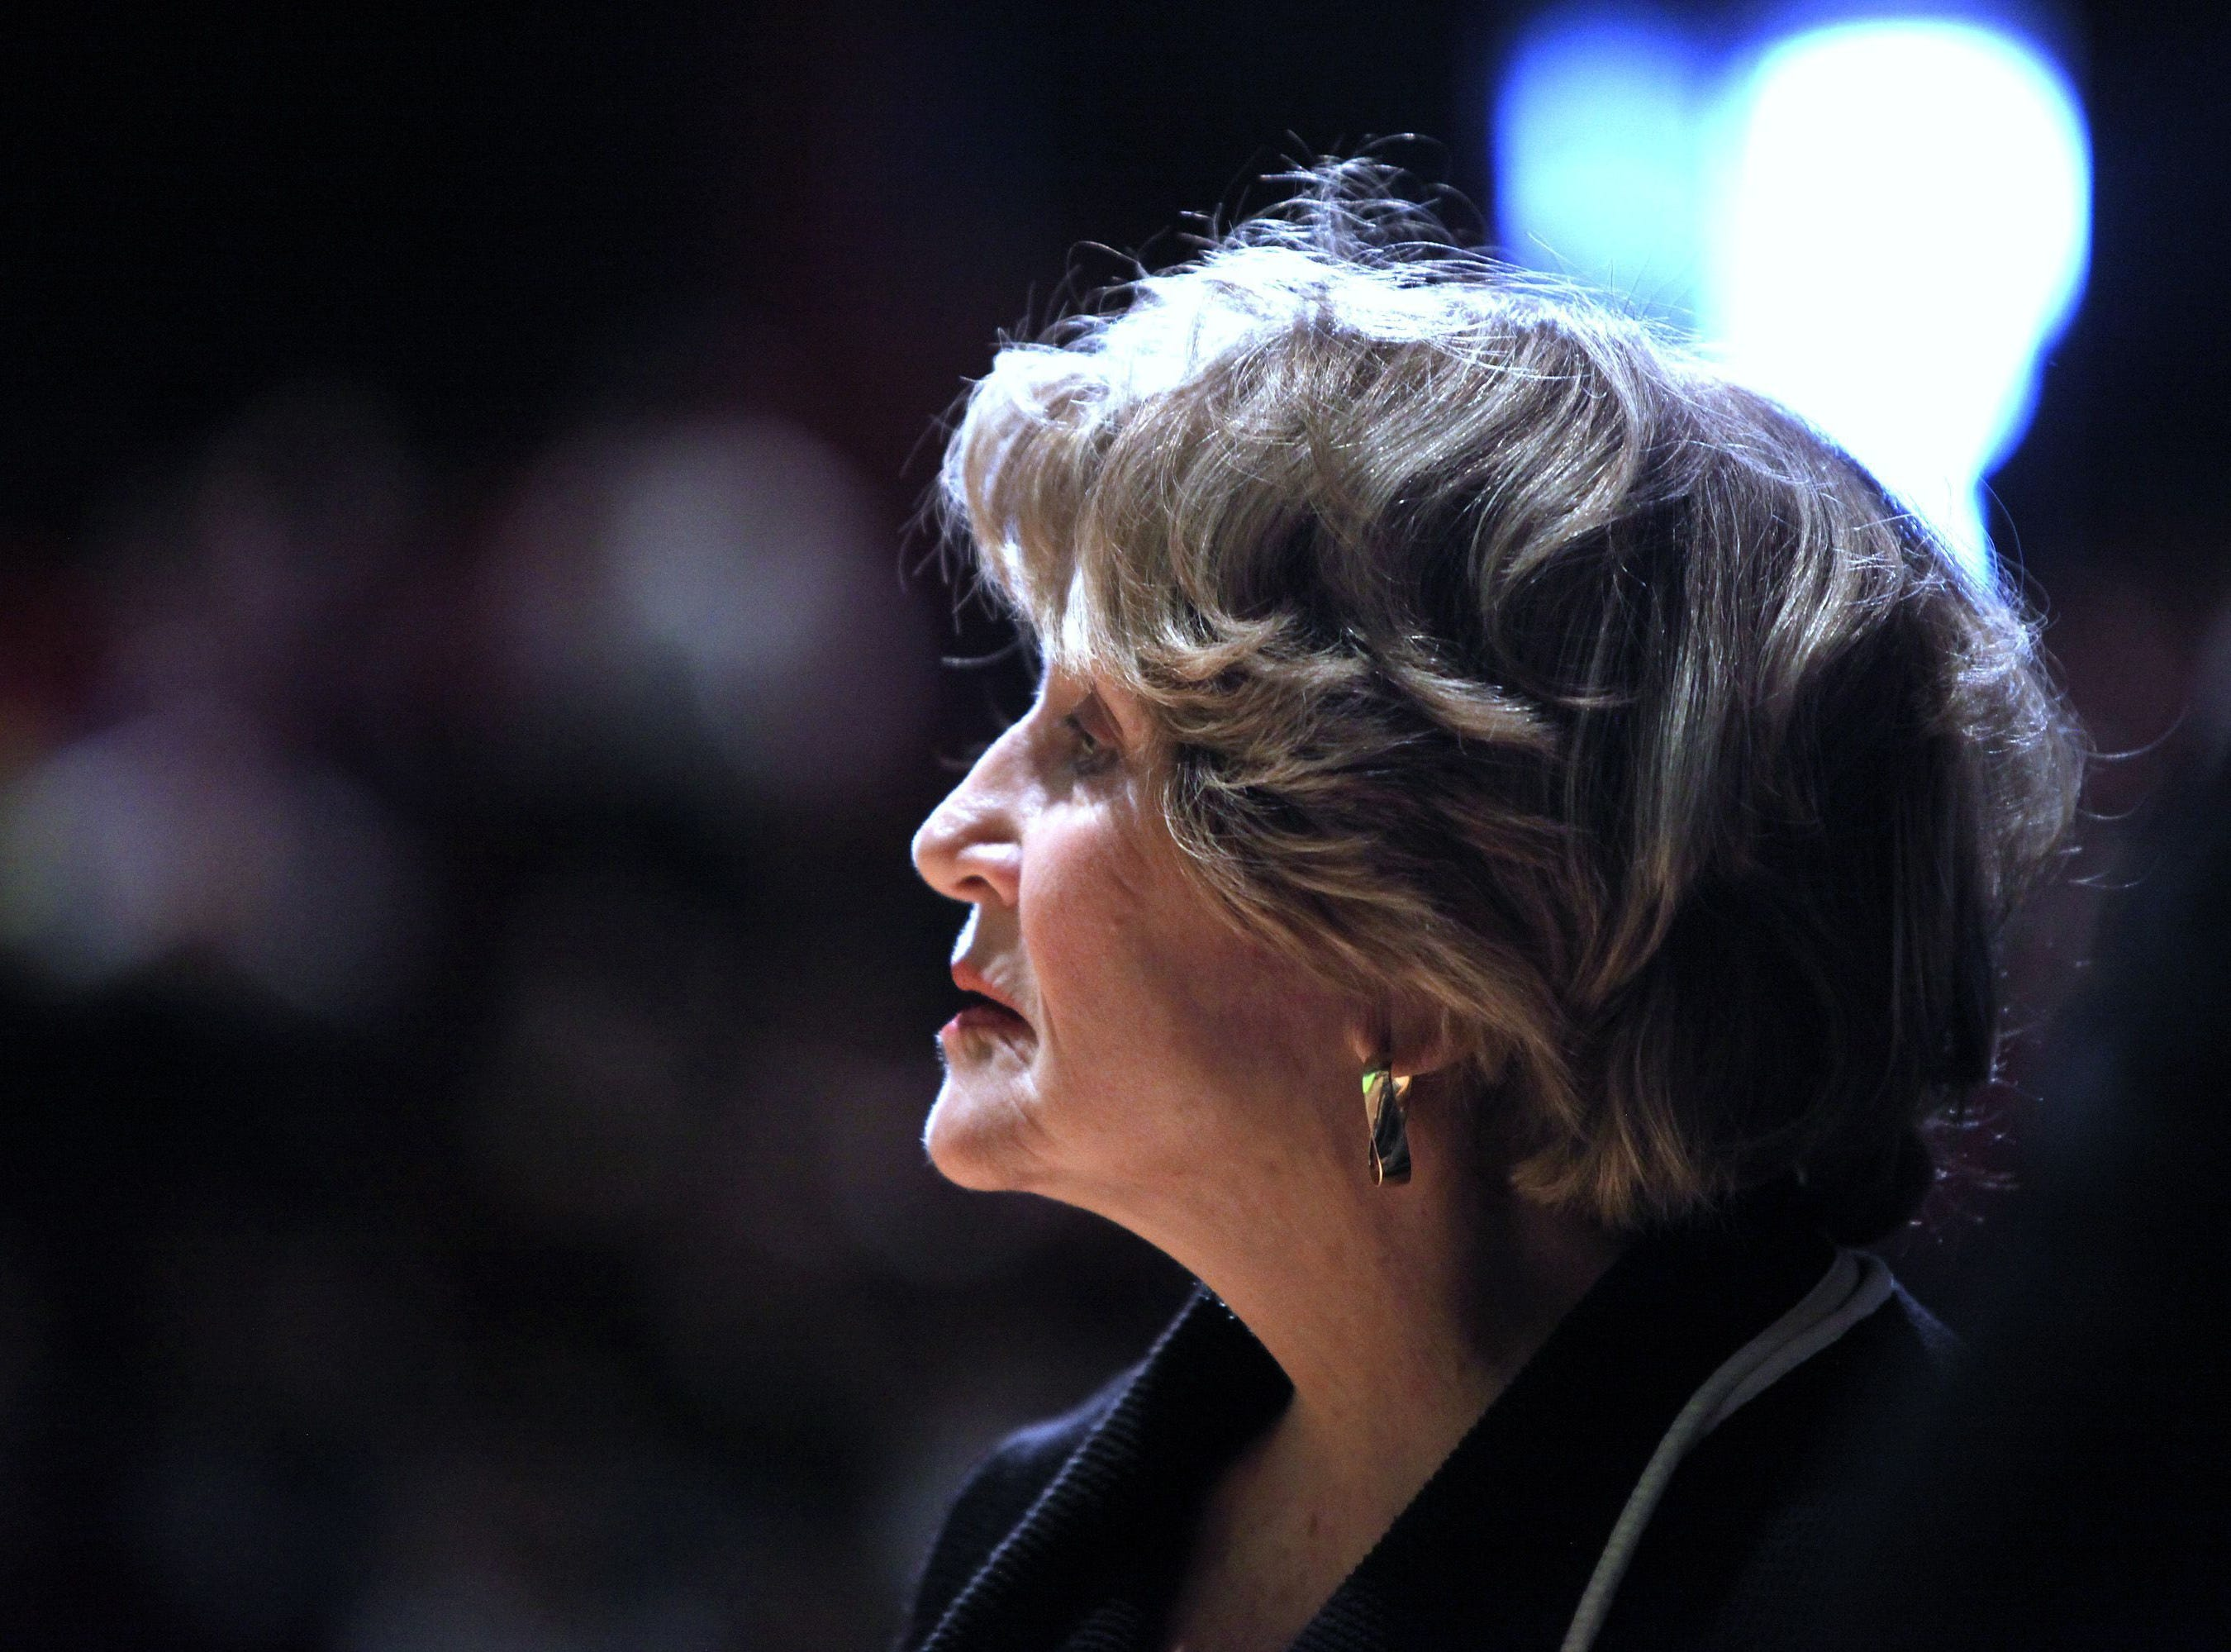 Veteran U.S. Rep. Louise Slaughter was the first woman to chair the House Rules Committee